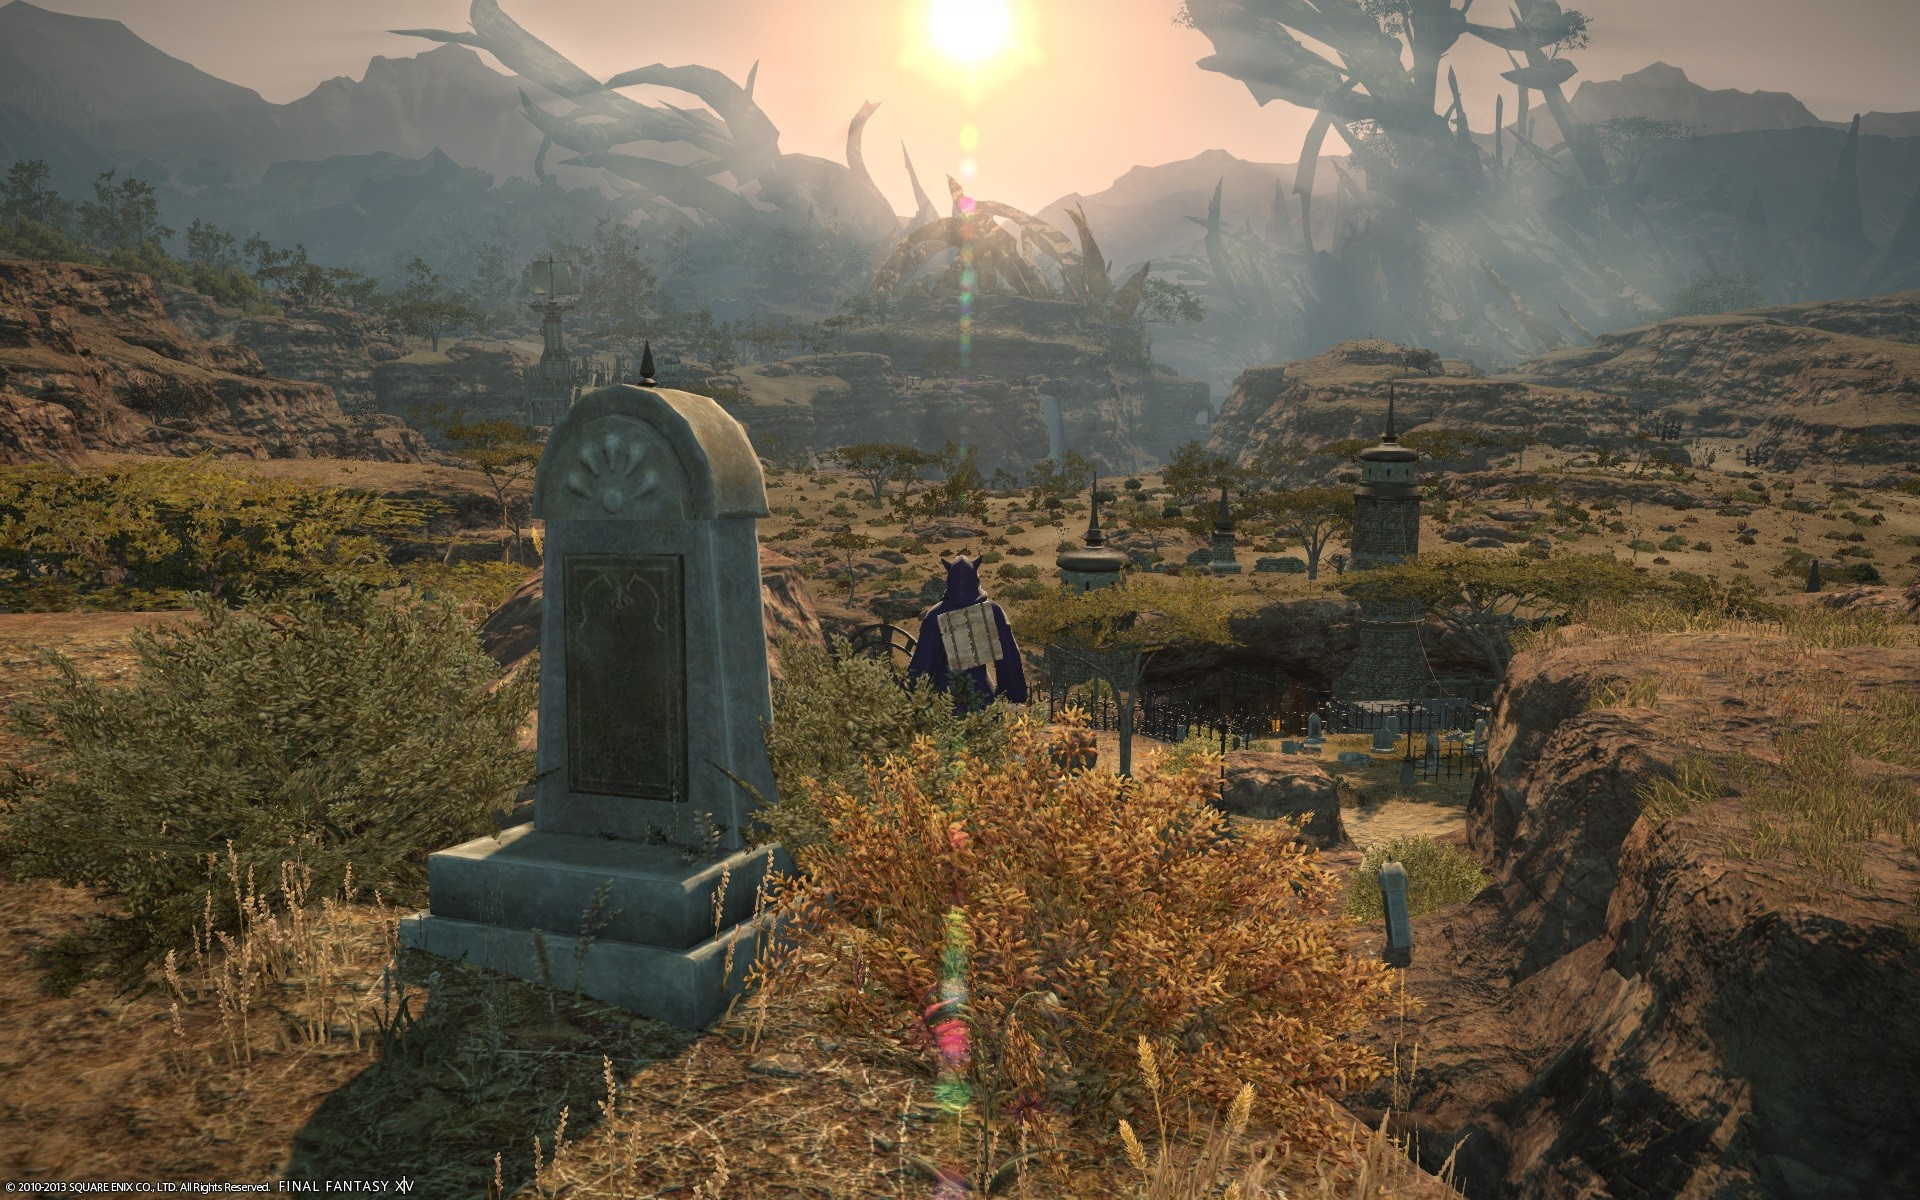 Final Fantasy XIV: A Realm Reborn - The grave has a nice view.